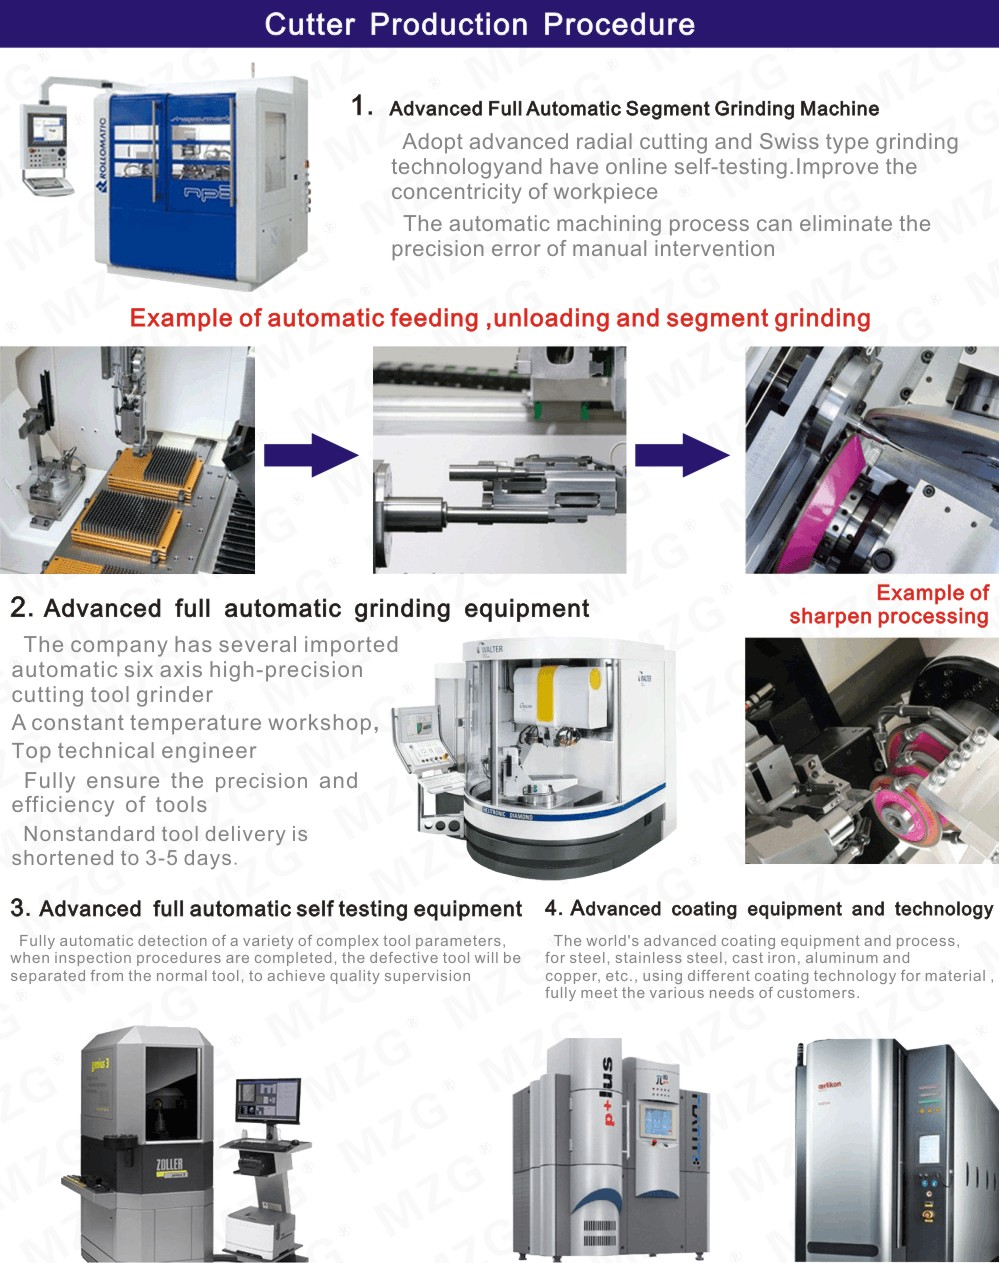 Cutter Production Procedure